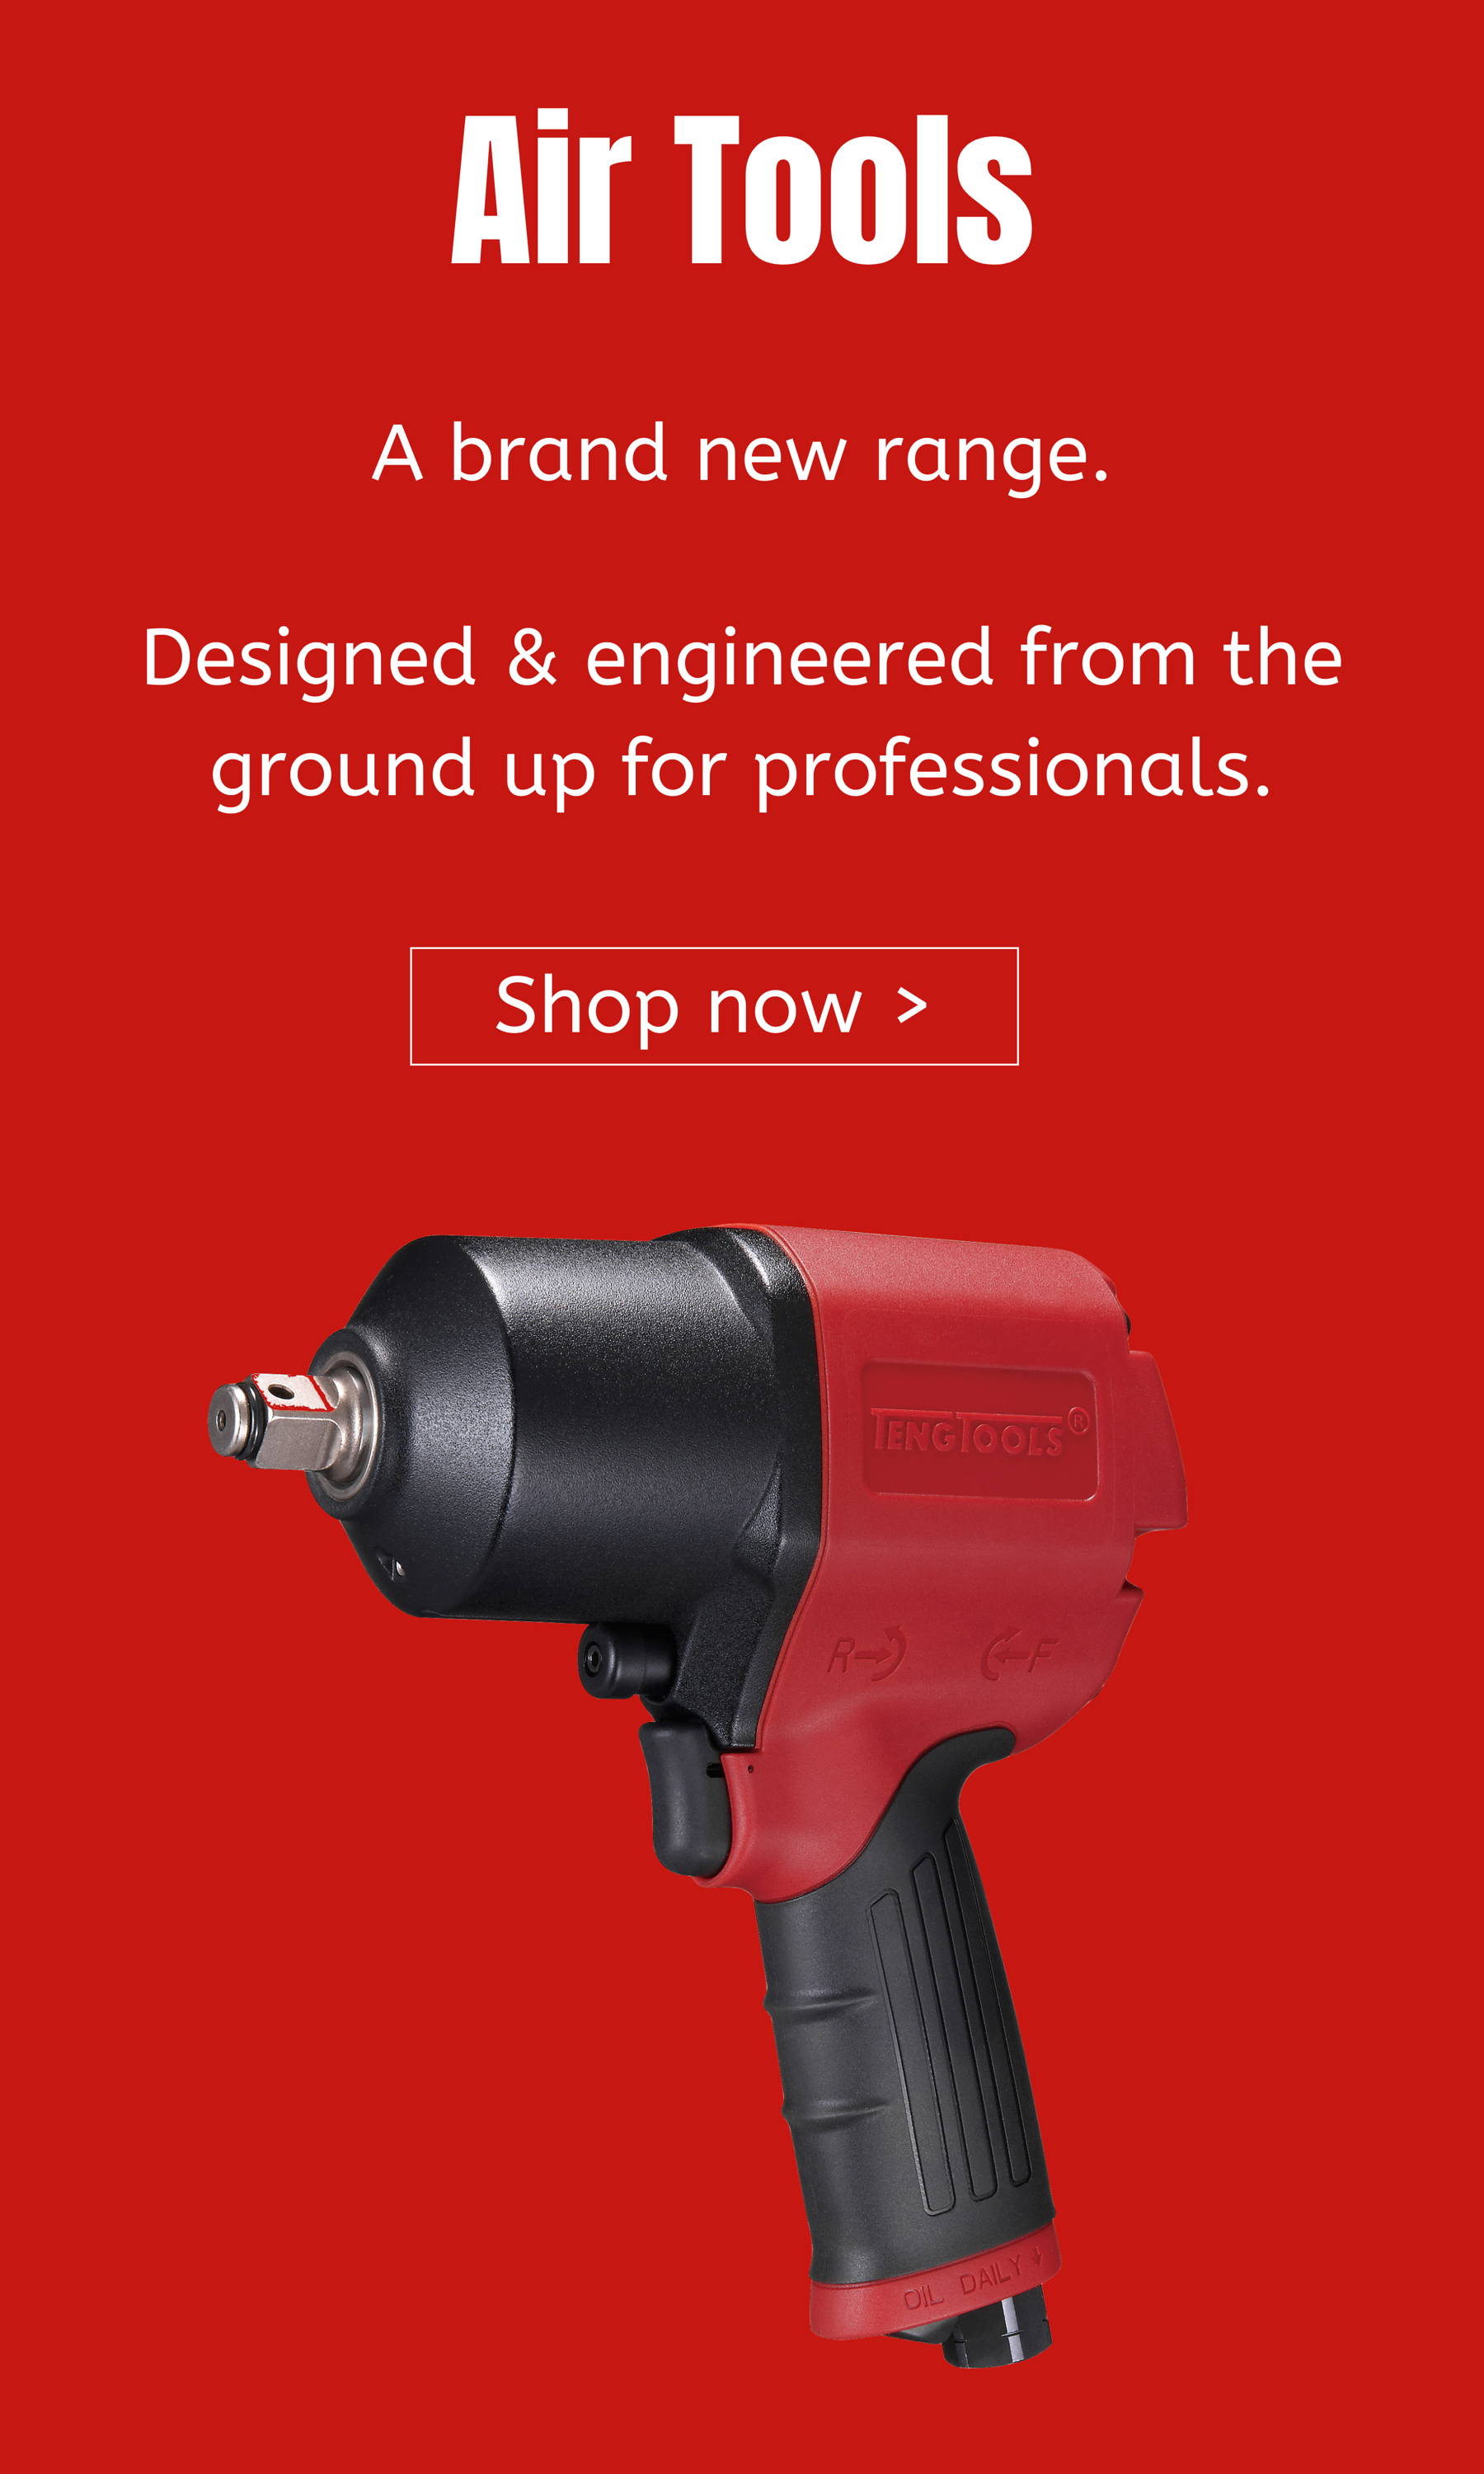 Air Tools. A brand new range. Designed and engineered from the ground up for professionals